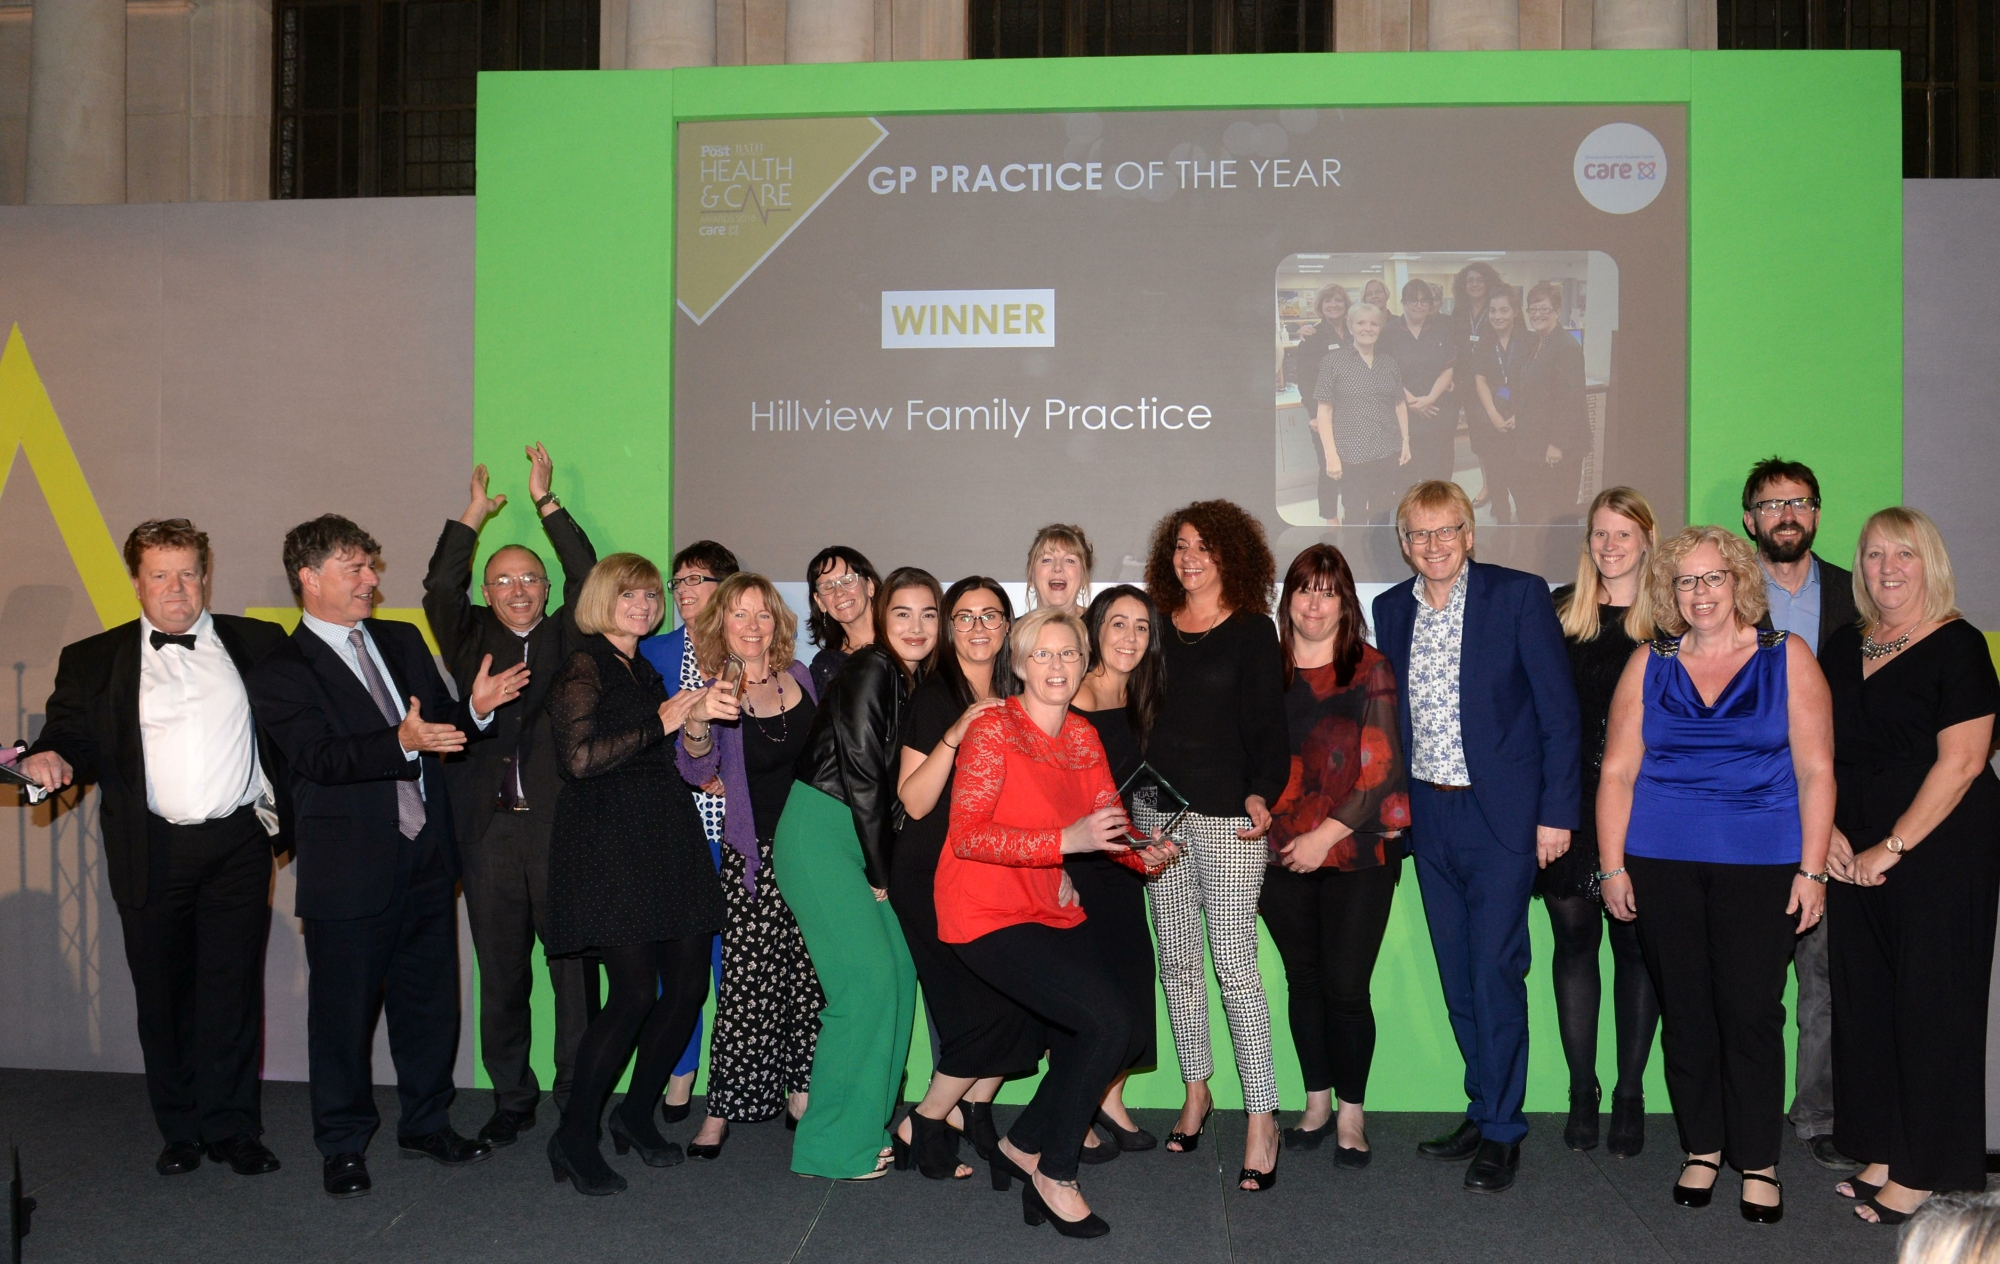 Hillview Practice wins GP Practice of the Year 2018